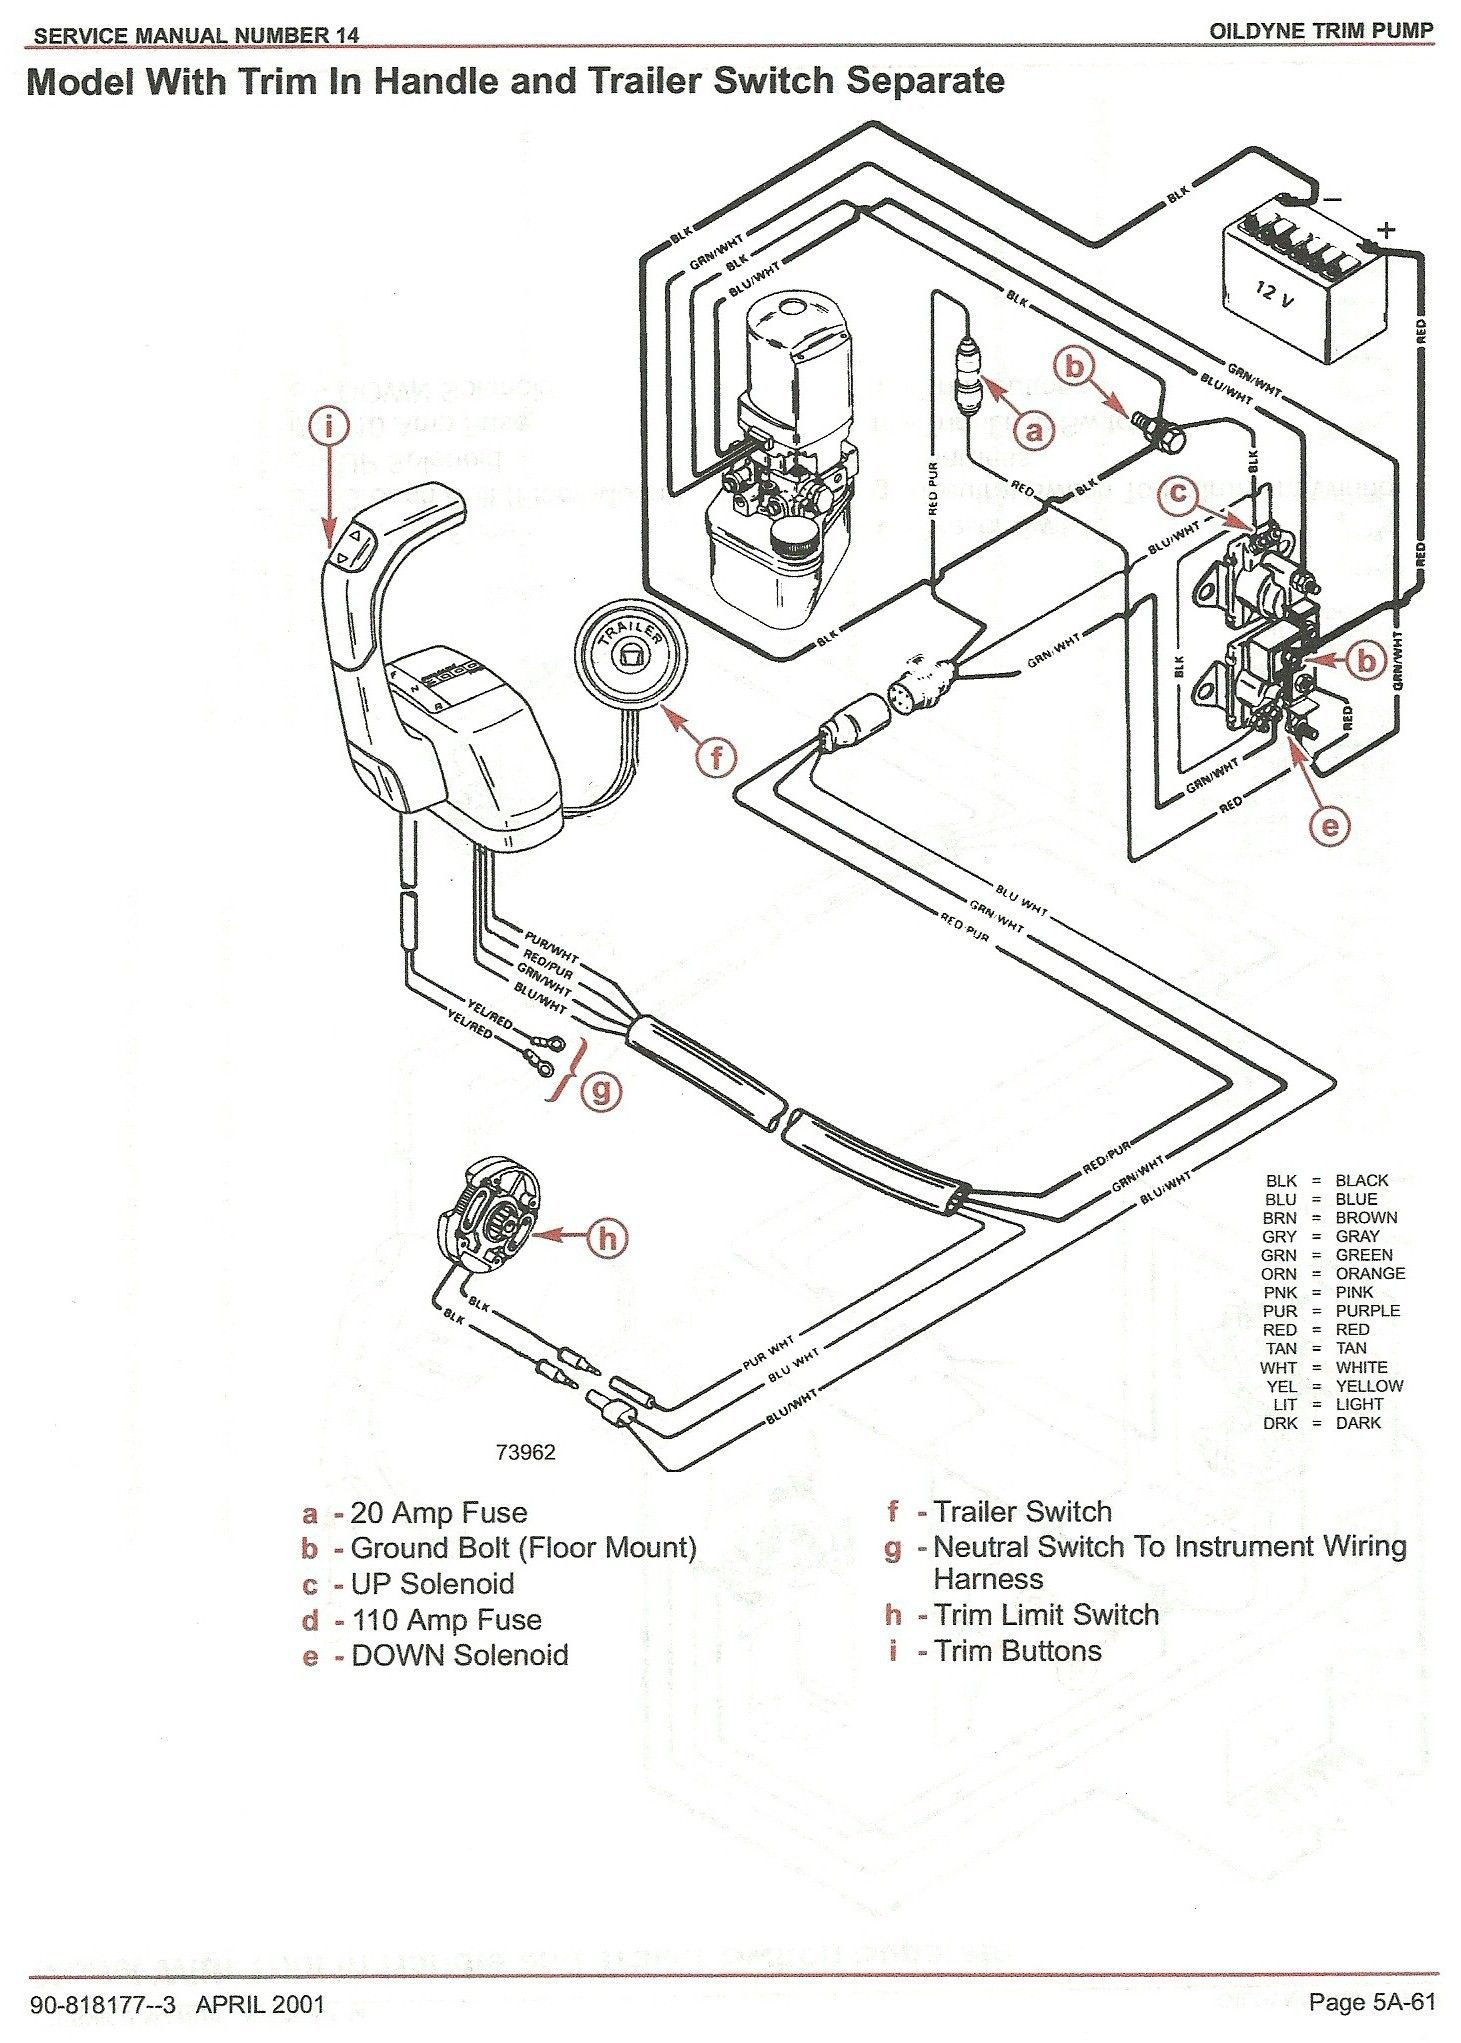 Mercruiser Trim Pump Wiring Wiring Diagram | Wire, Diagram, Trim | Pump Wire Schematics |  | Pinterest